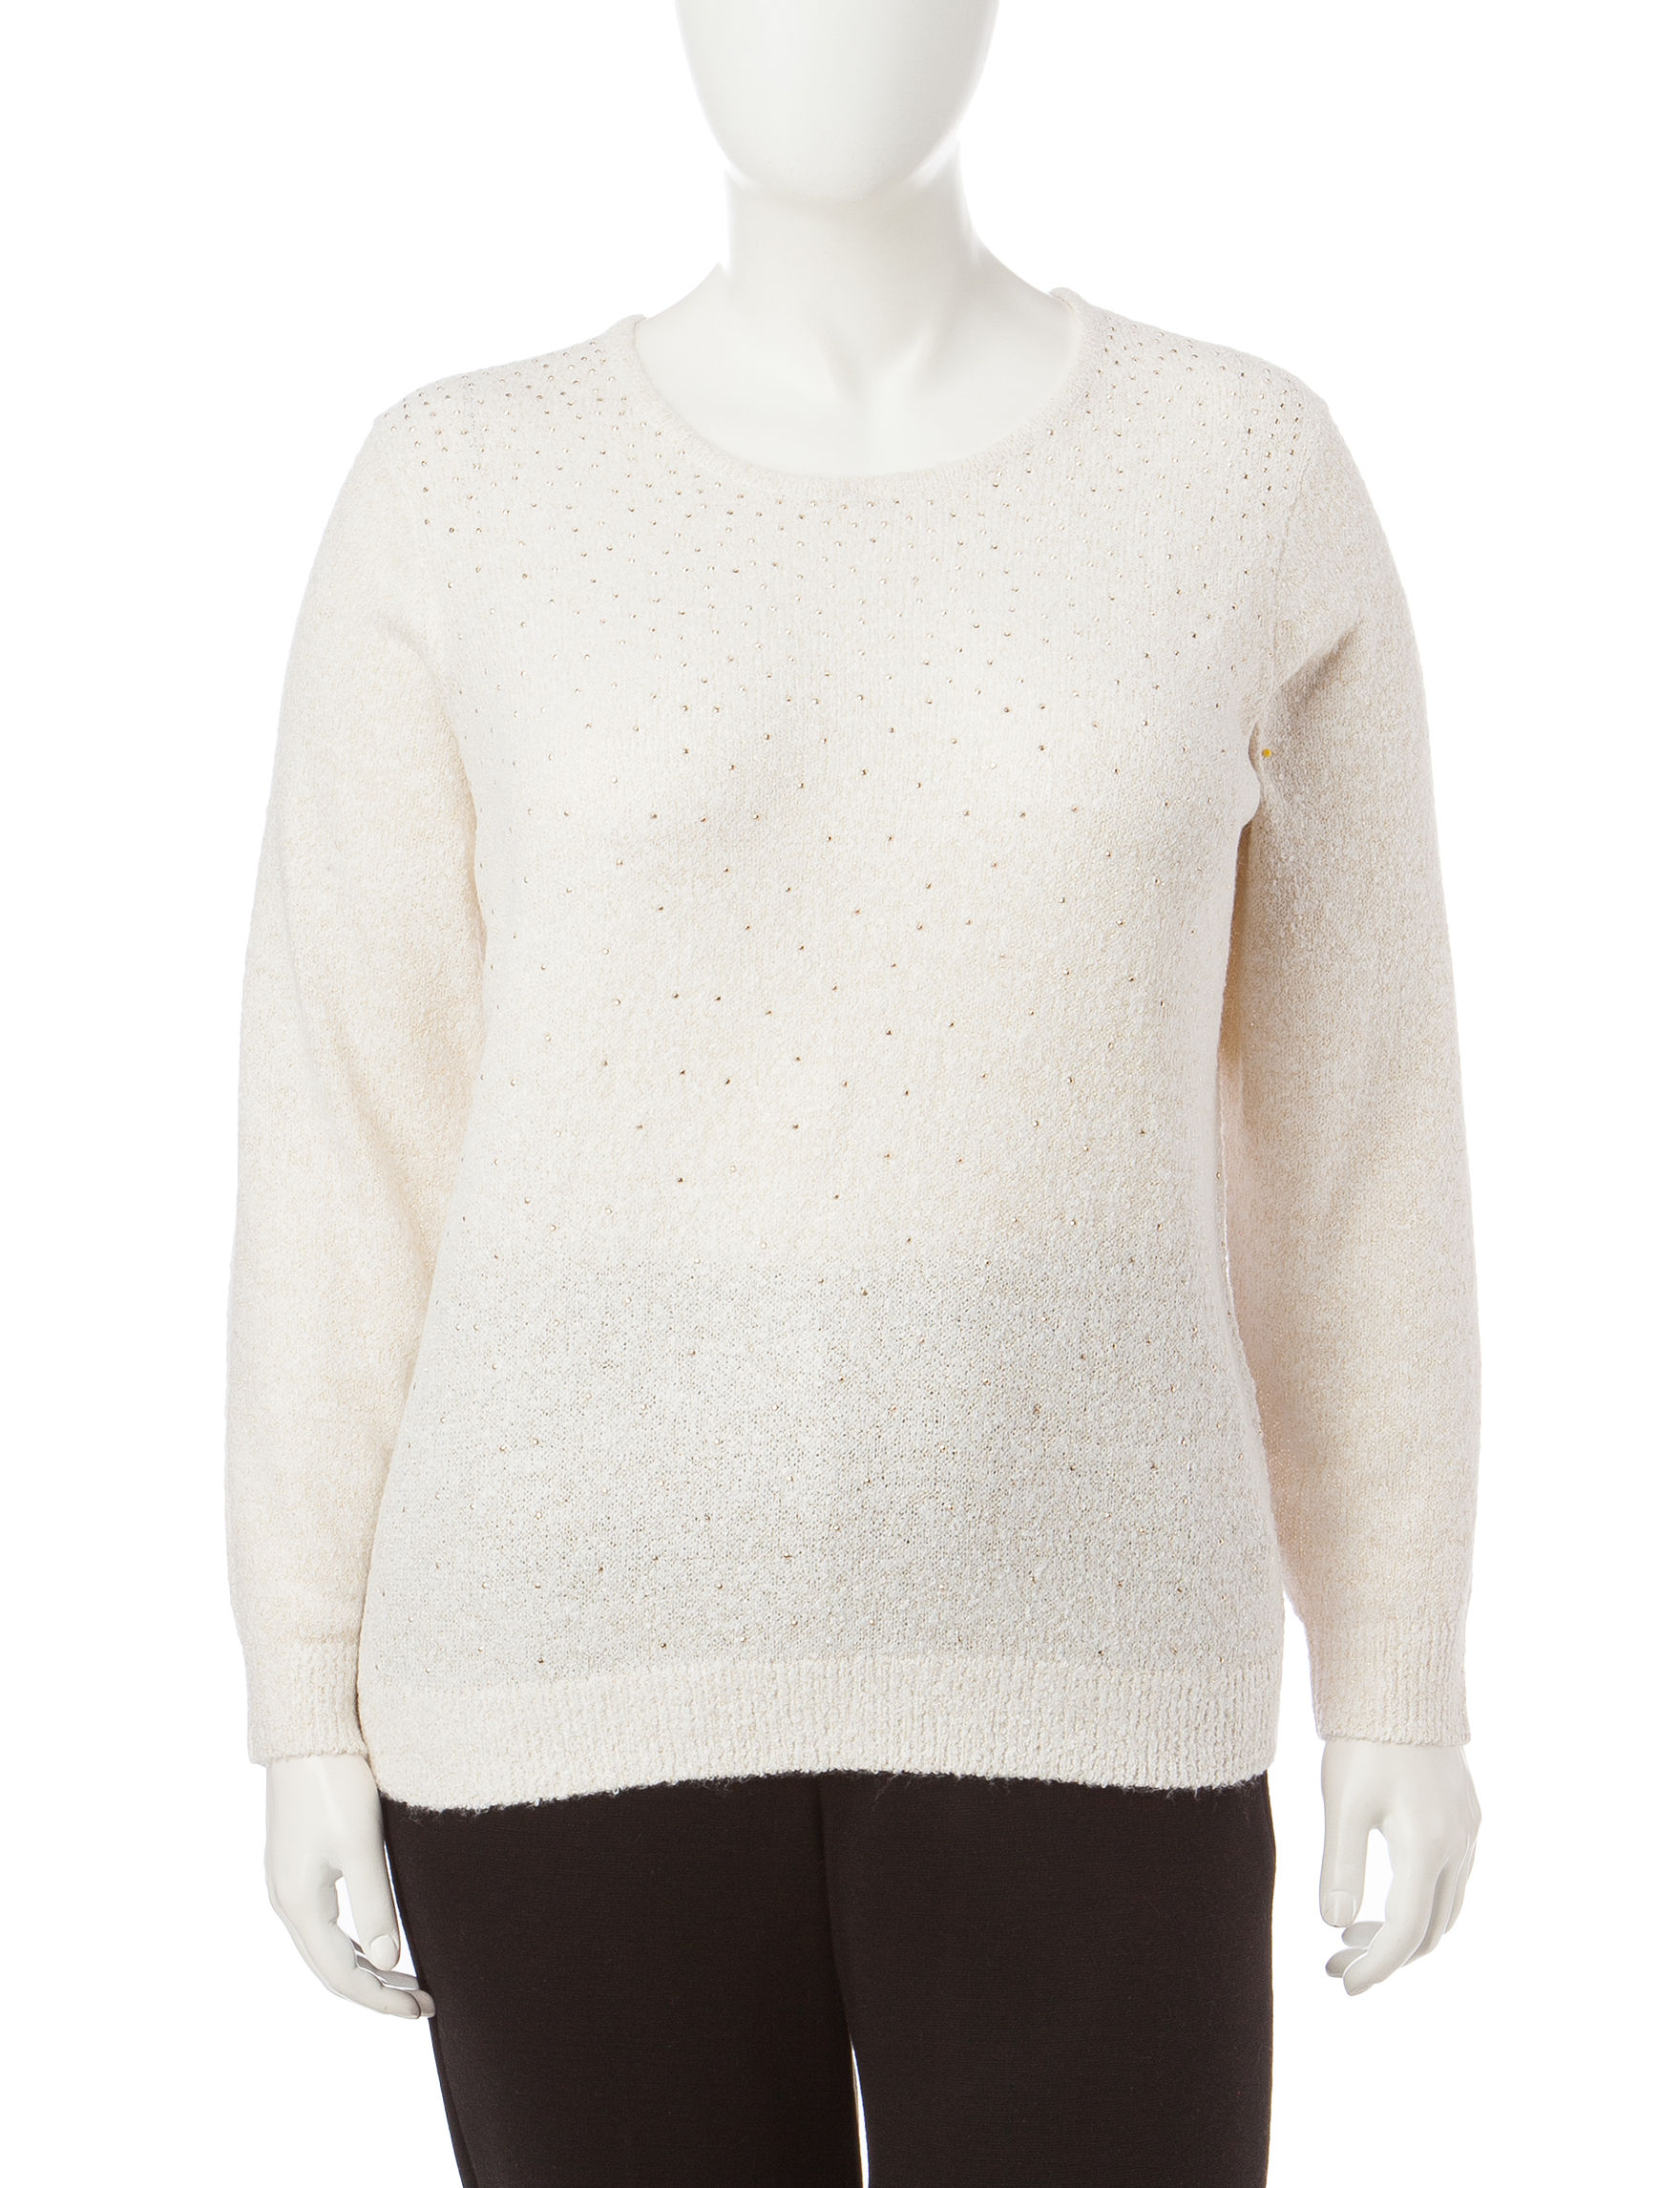 Cathy Daniels White Pull-overs